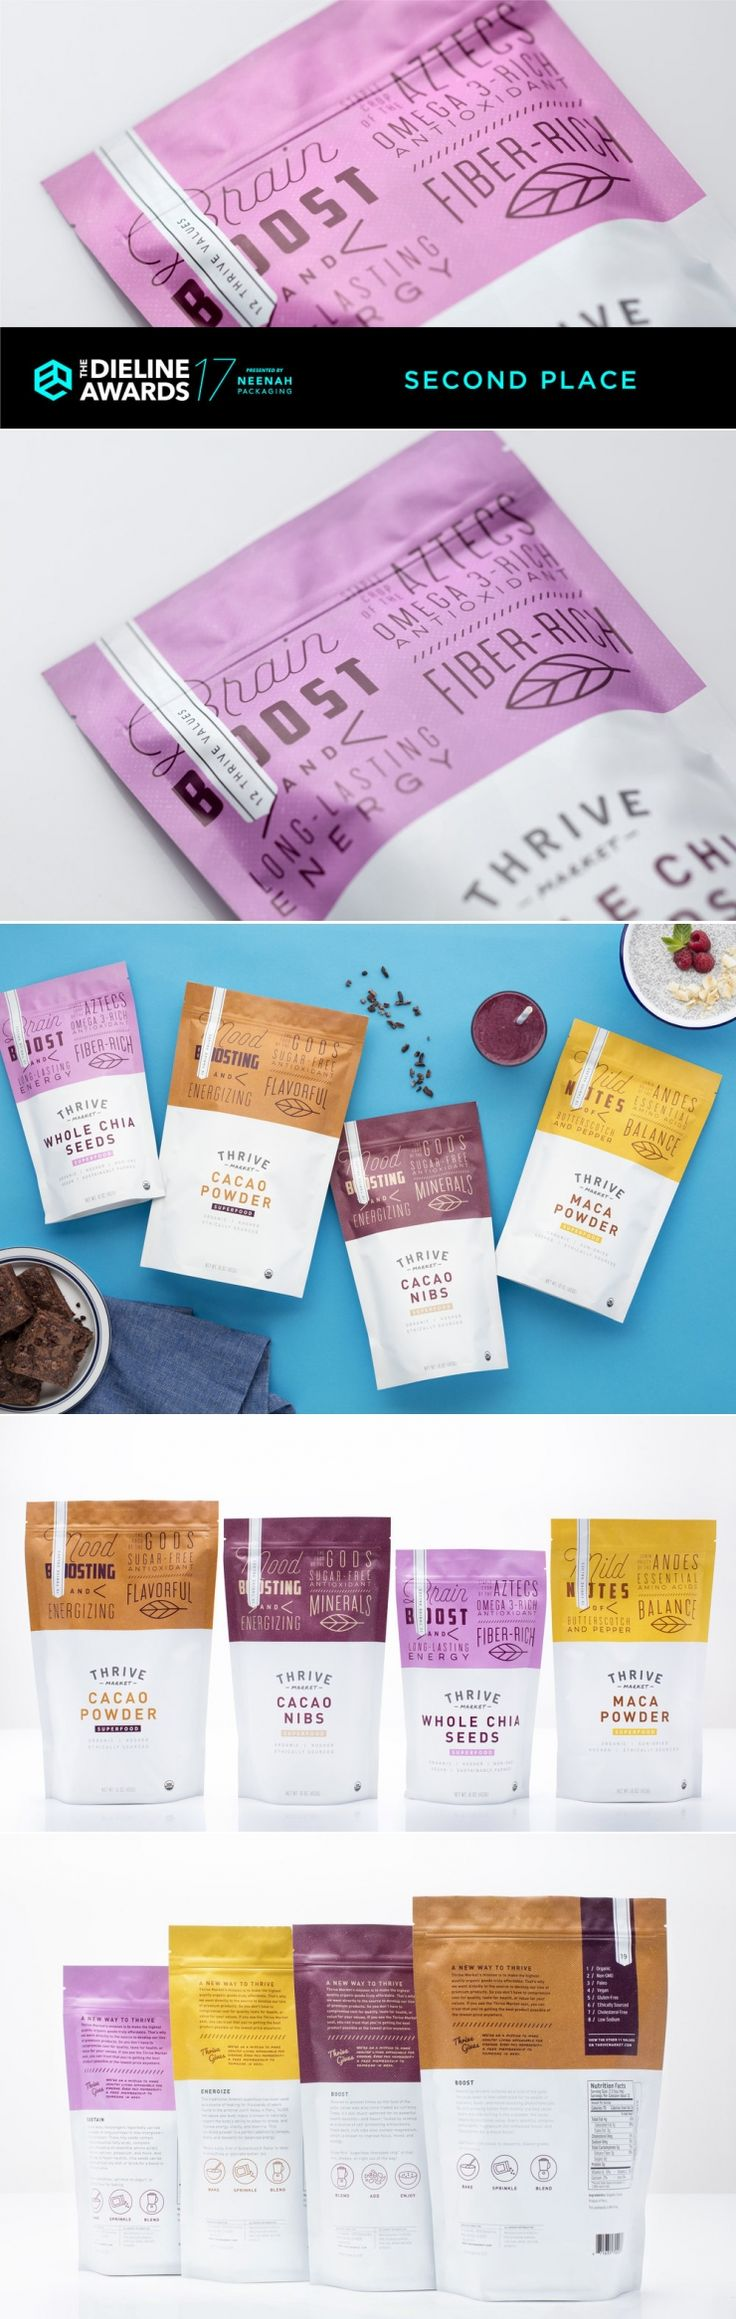 The Dieline Awards 2017: Thrive Market Organic Superfoods — The Dieline | Packaging & Branding Design & Innovation News